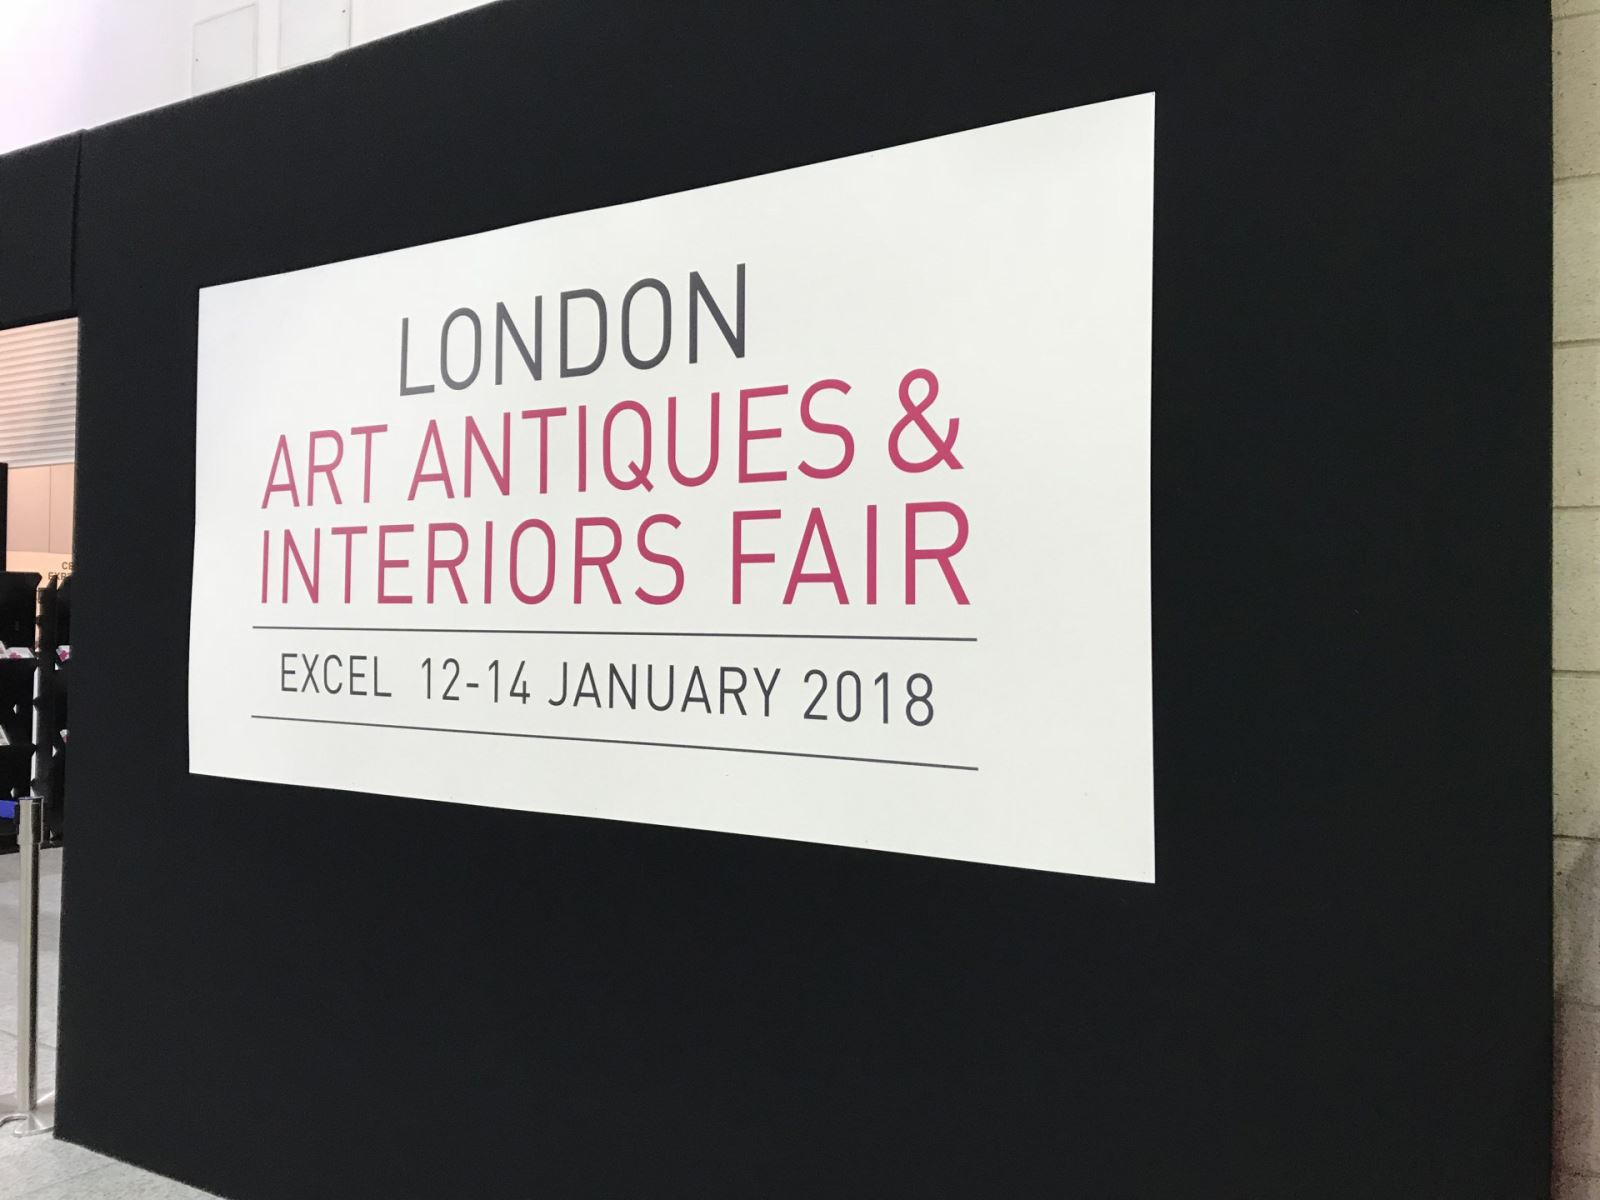 Last week I had chance to visit London Art Antiques & Interior Fair at Excel. It was held between 12-14 January 2018. There was 60 dealers and 1 cafe inside.  In order to visit Excel London it is easy to get DLR underground there are too many fairs inside. Check their websites.  https://www.excel.london/visitor/getting-here/rail